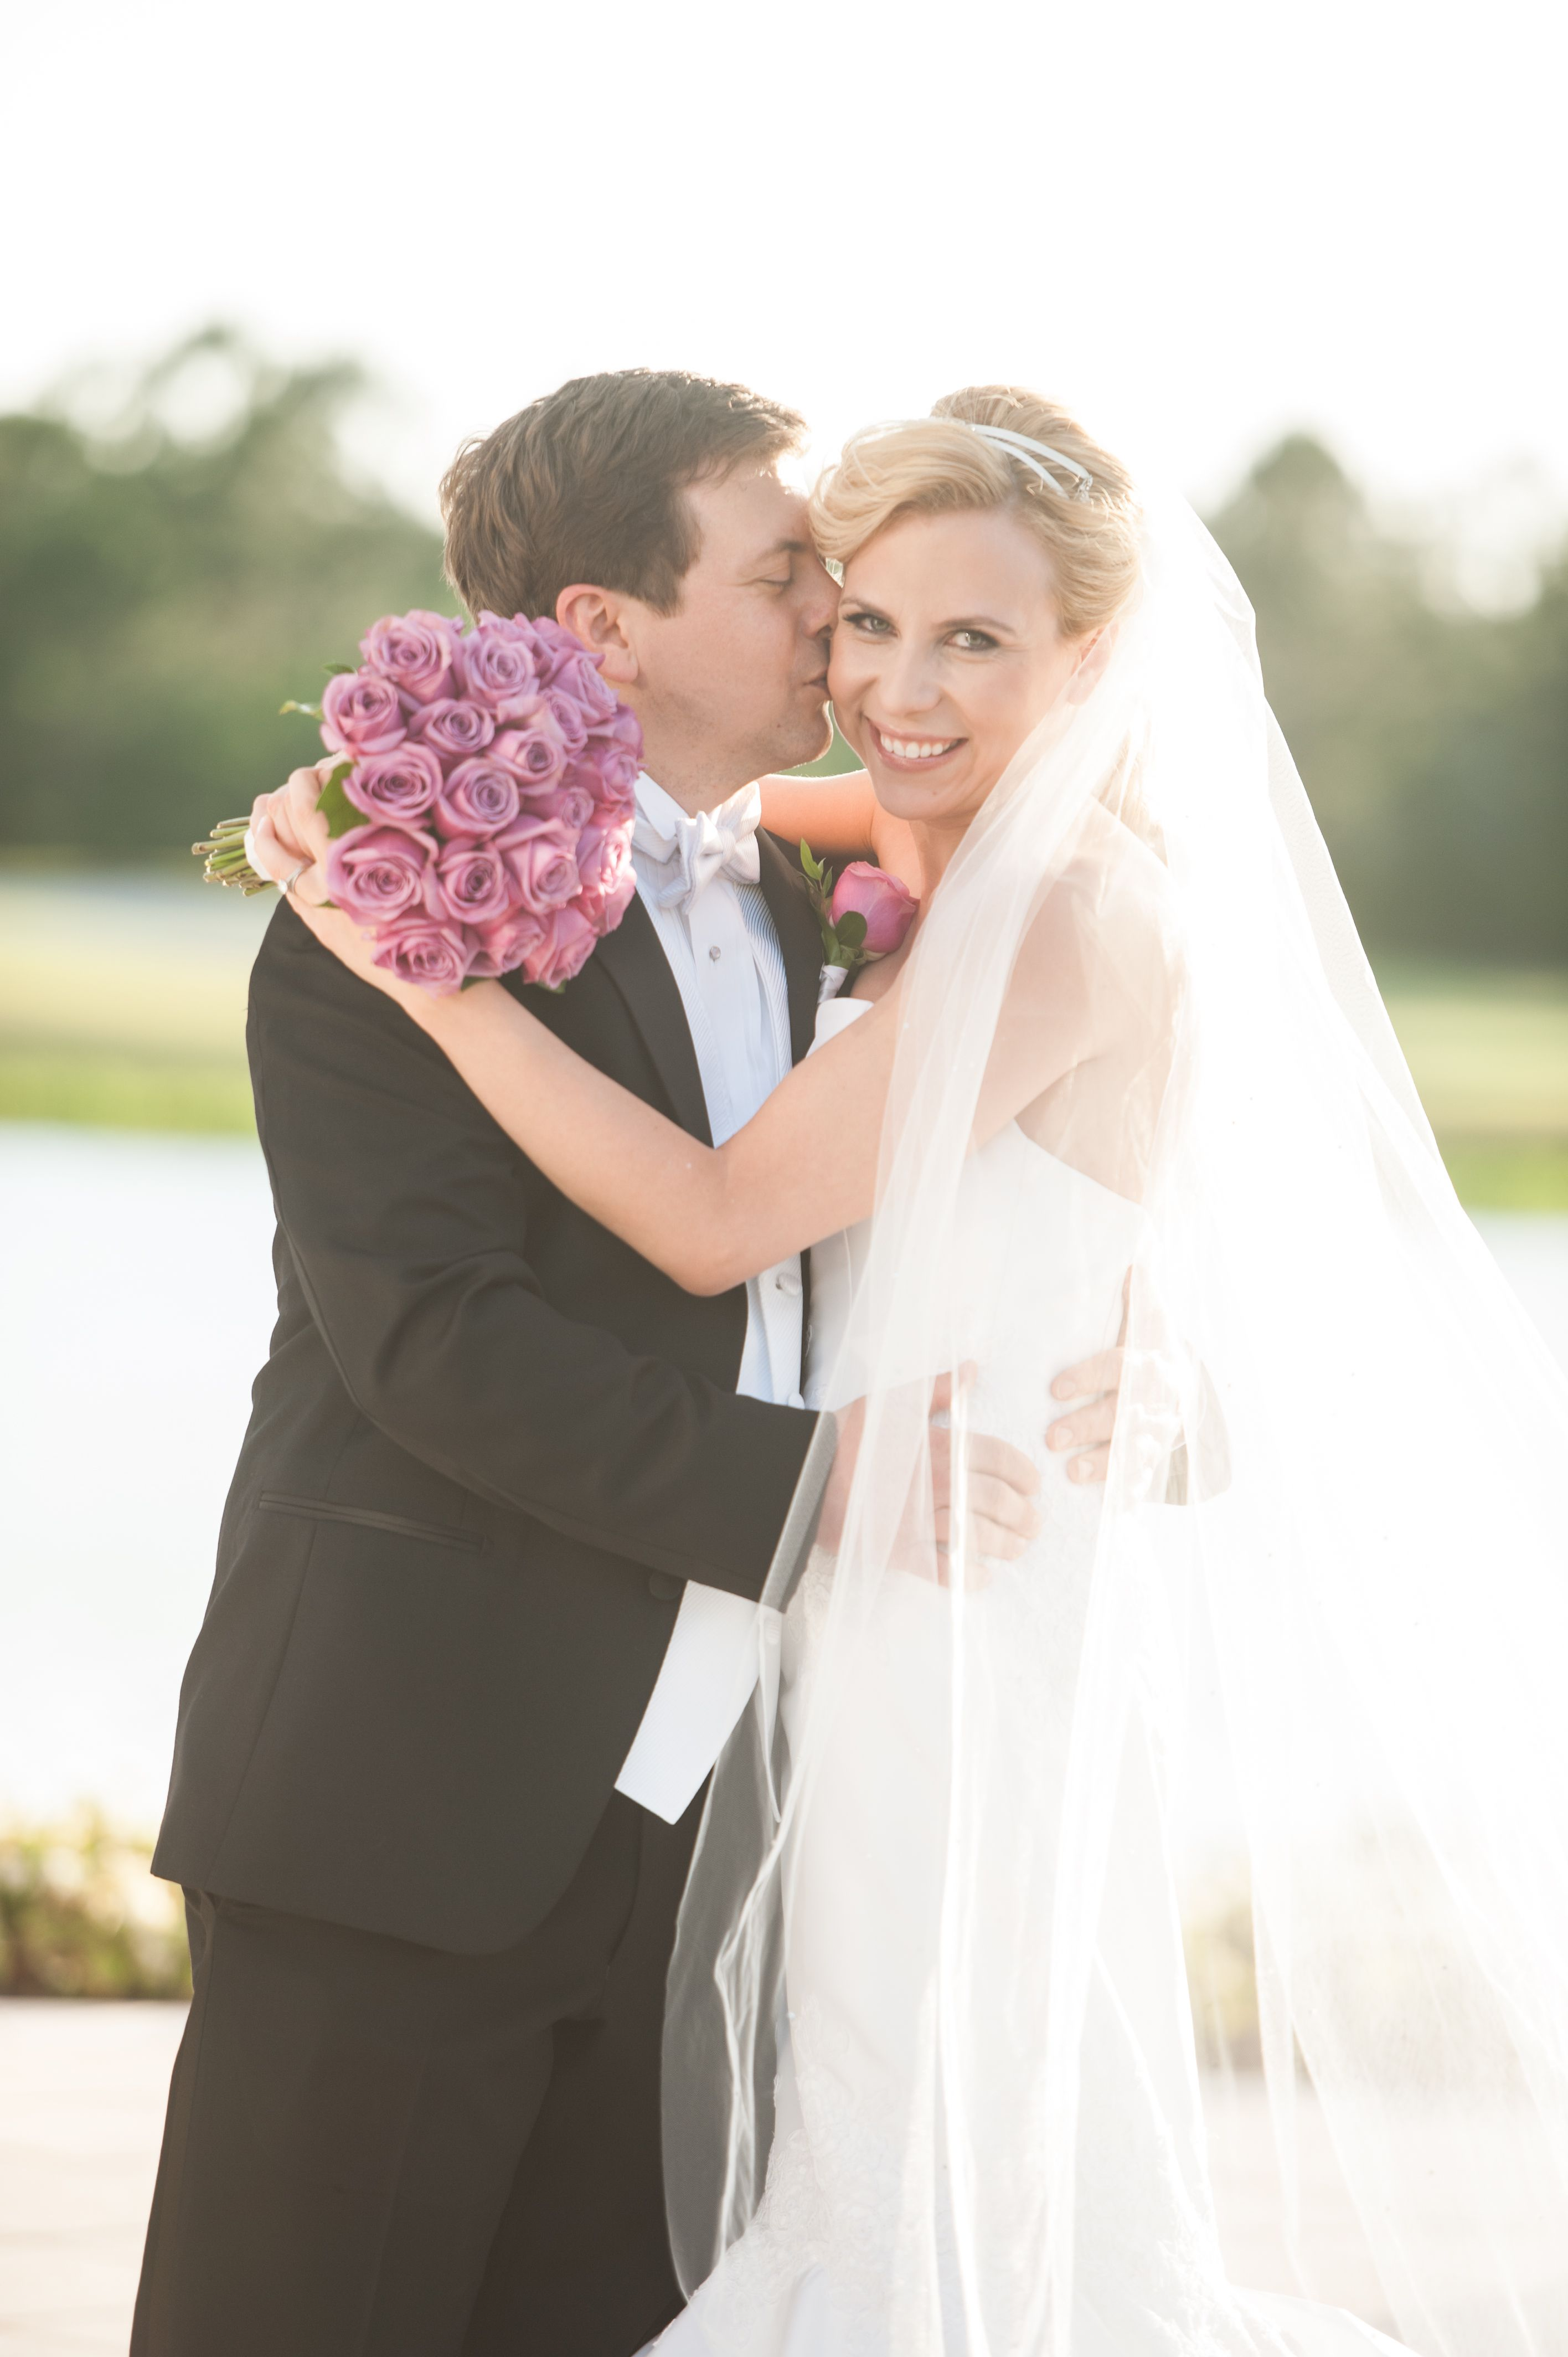 Bride and Groom Pictures, Portraits, Veil, Wedding Dress